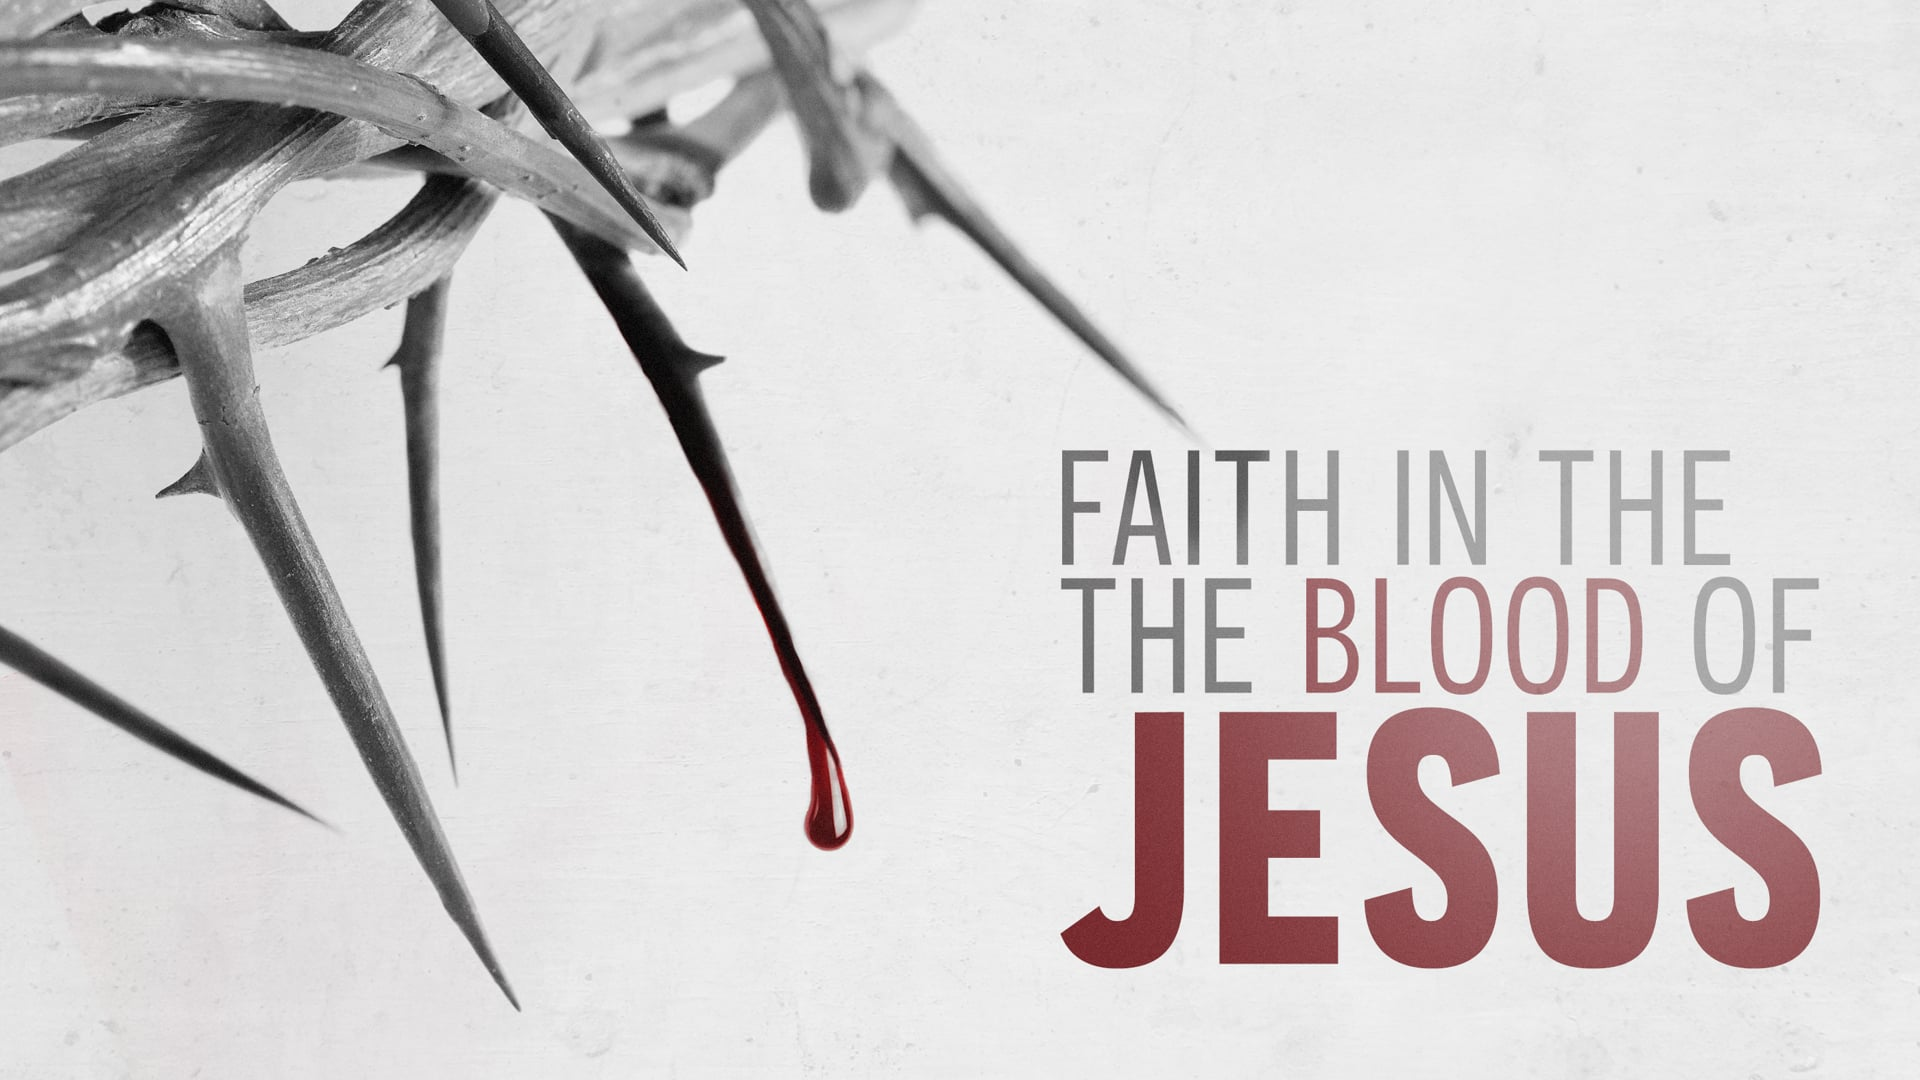 Faith in the Blood of Jesus